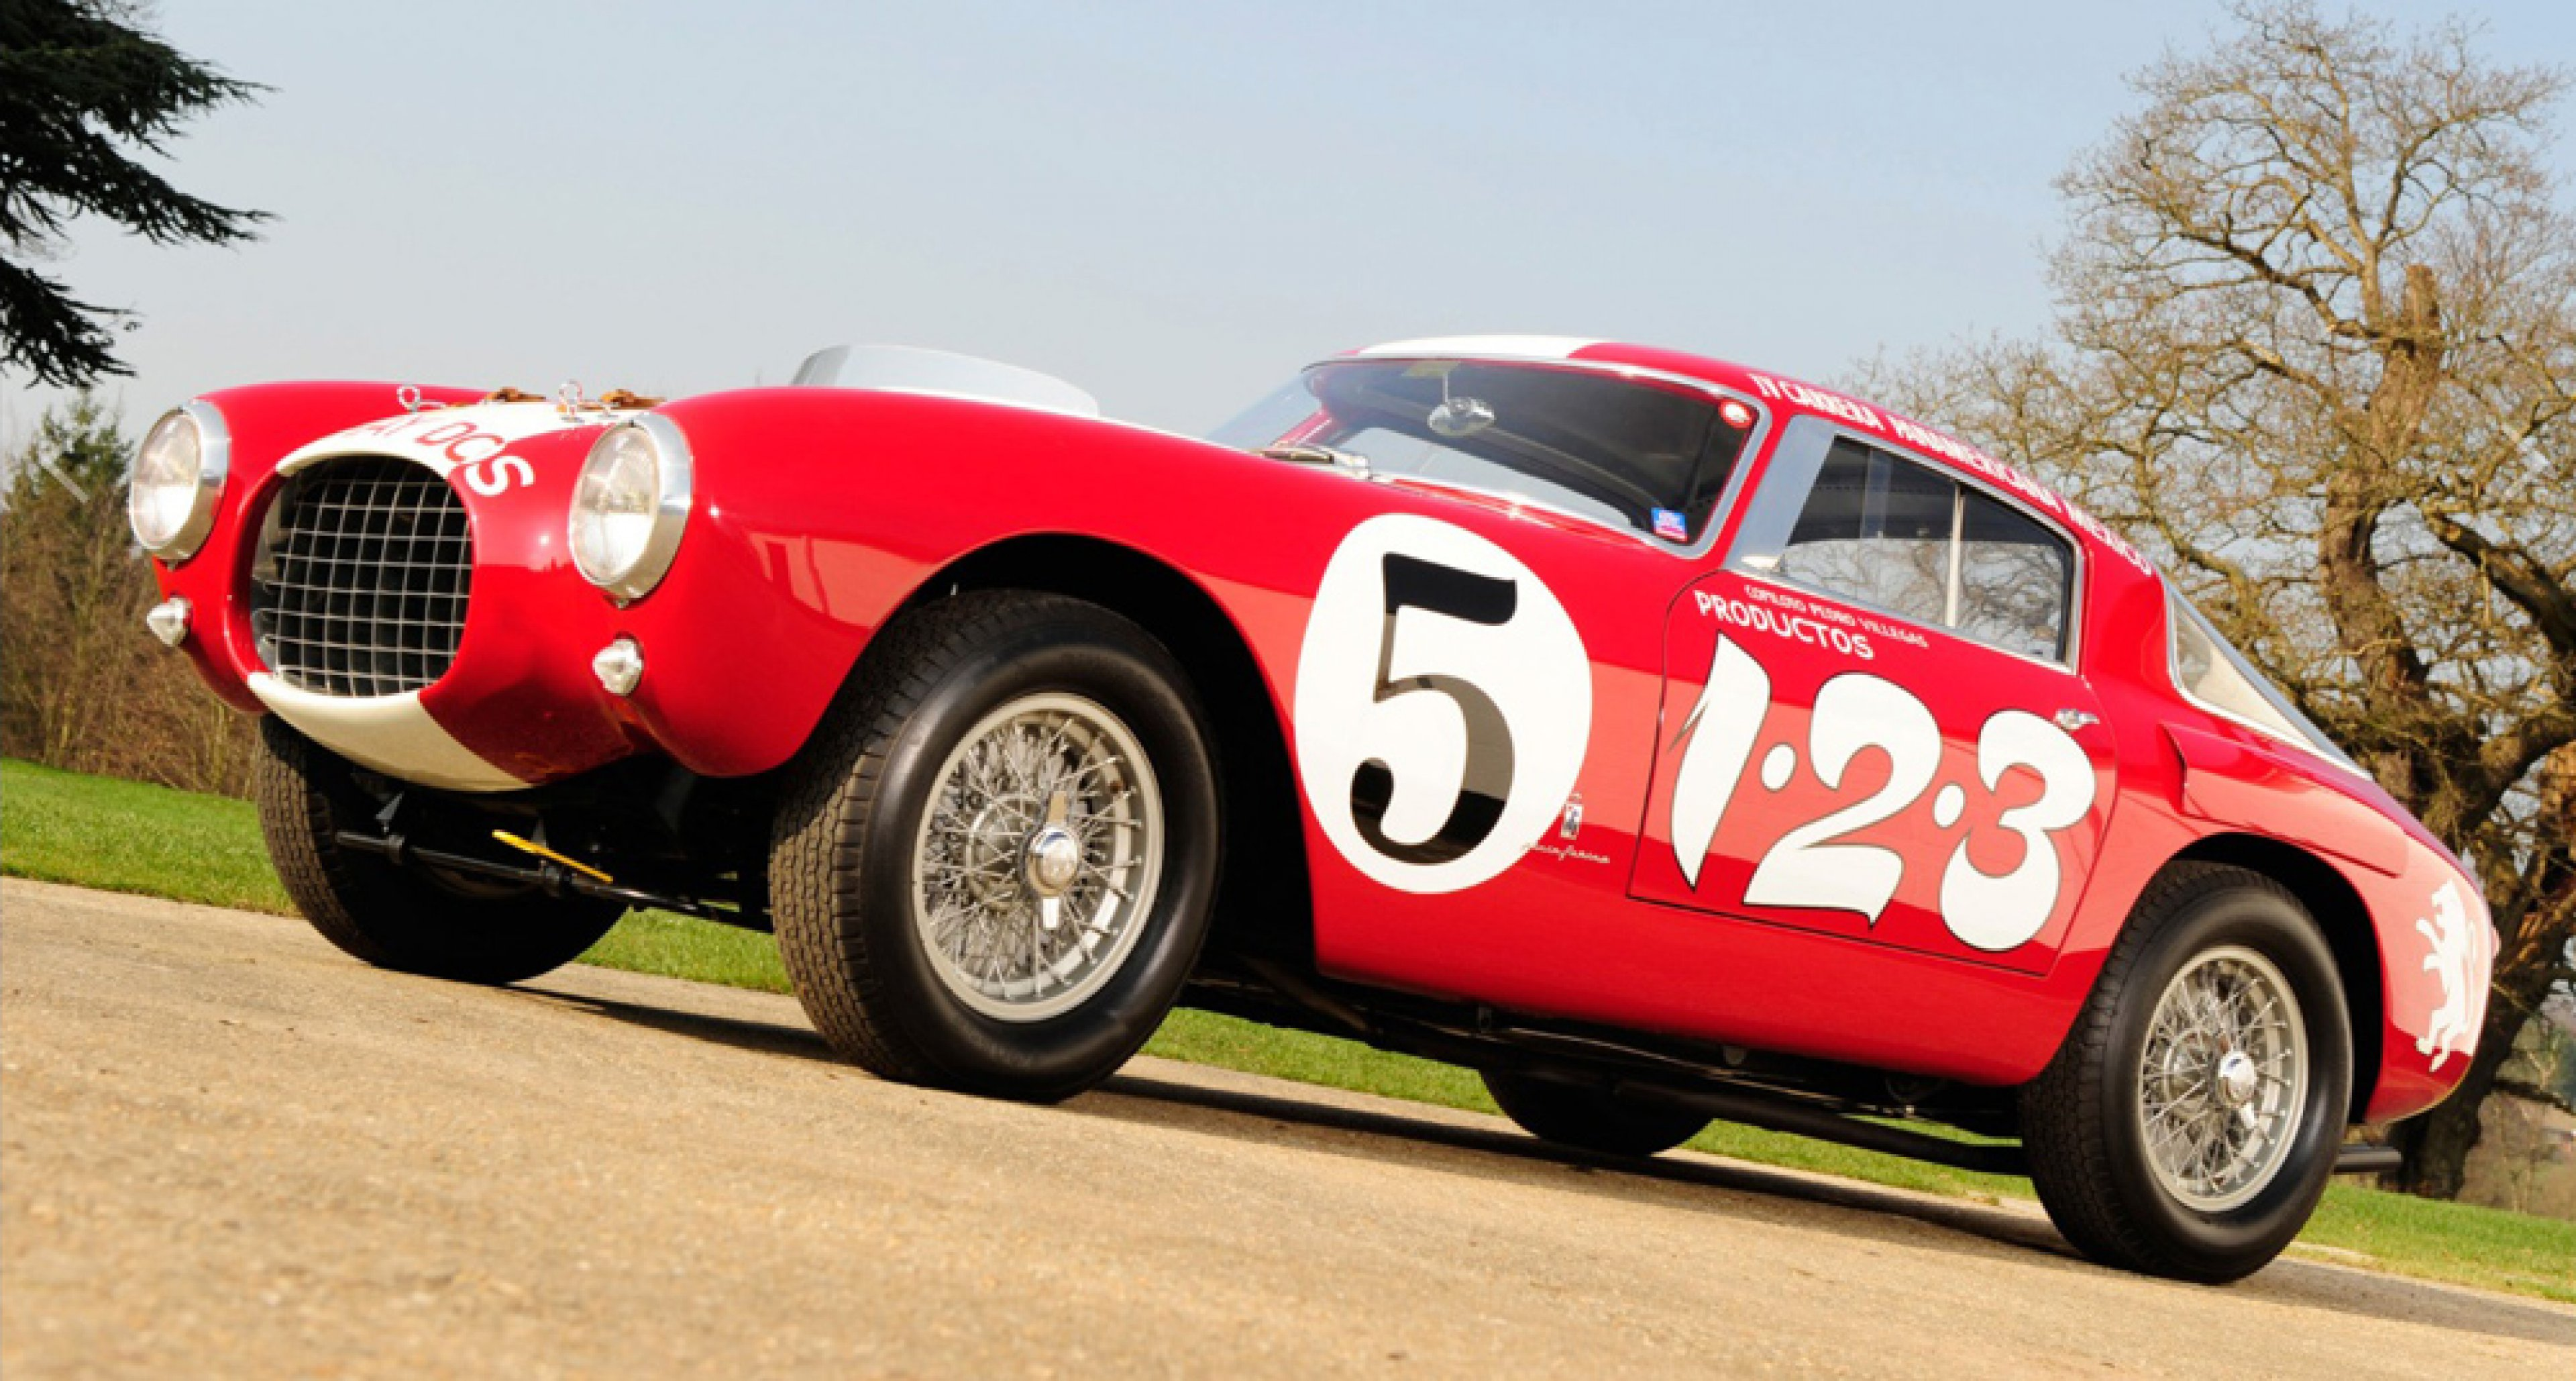 1953 Ferrari 340/375 MM Berlinetta 'Competizione', sold by RM Auctions in May 2013 for $ 12,972,045.